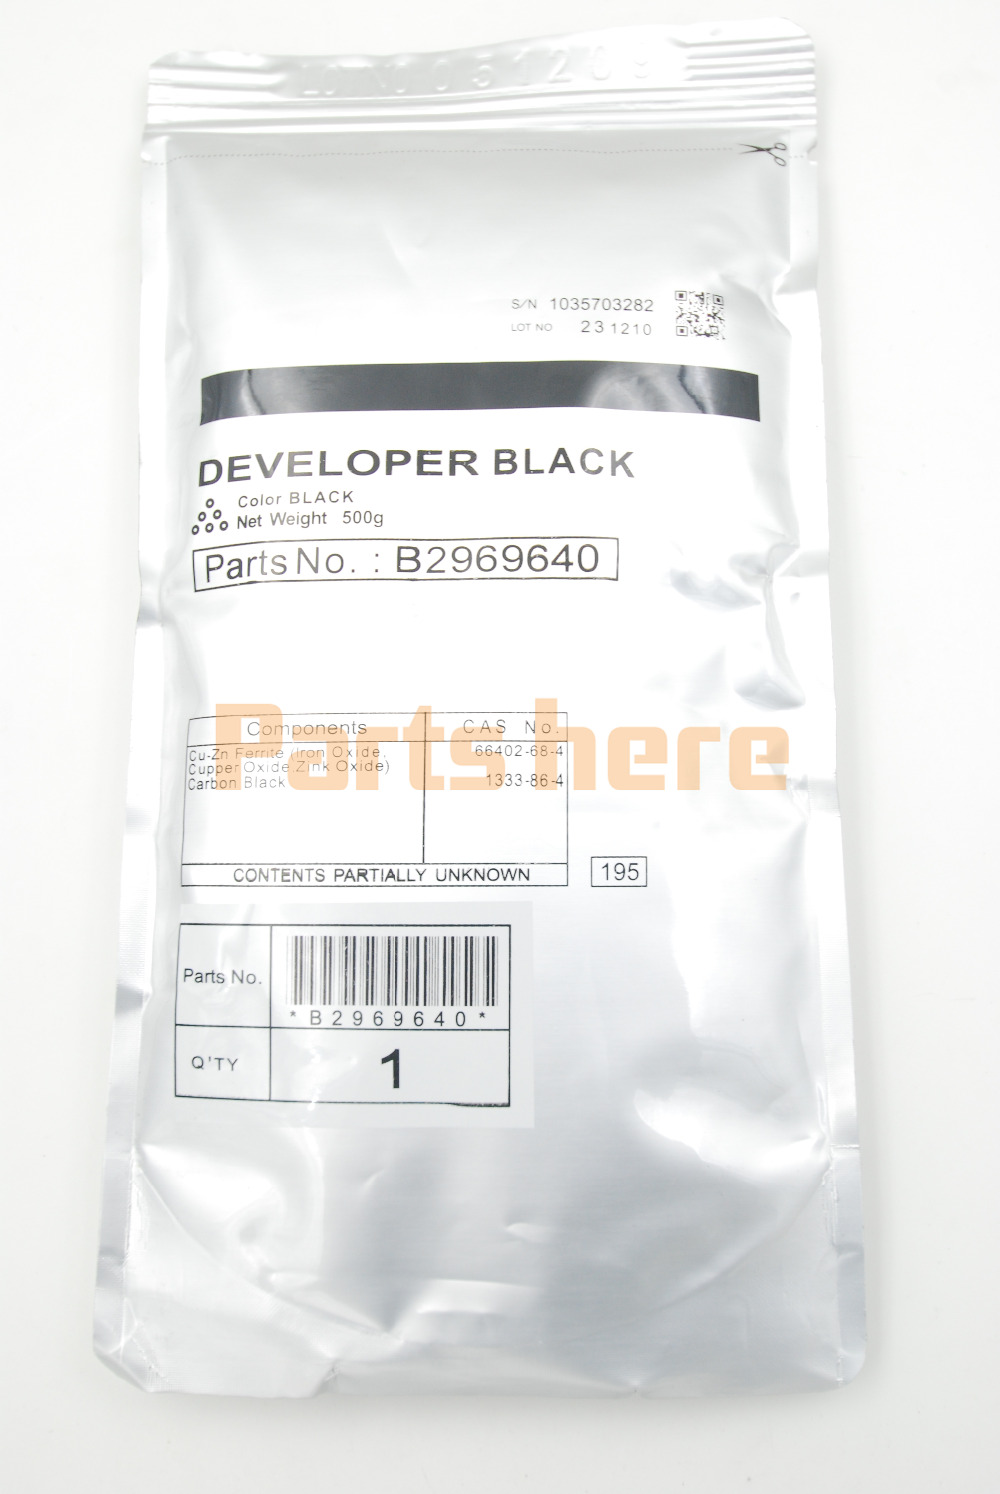 B296-9640 B2969640 Black Developer 500g for Ricoh for Aficio MP 3500 4000 4001 4002 4500 5000 5001 SP 8200 MP 4001 5001 LD 040